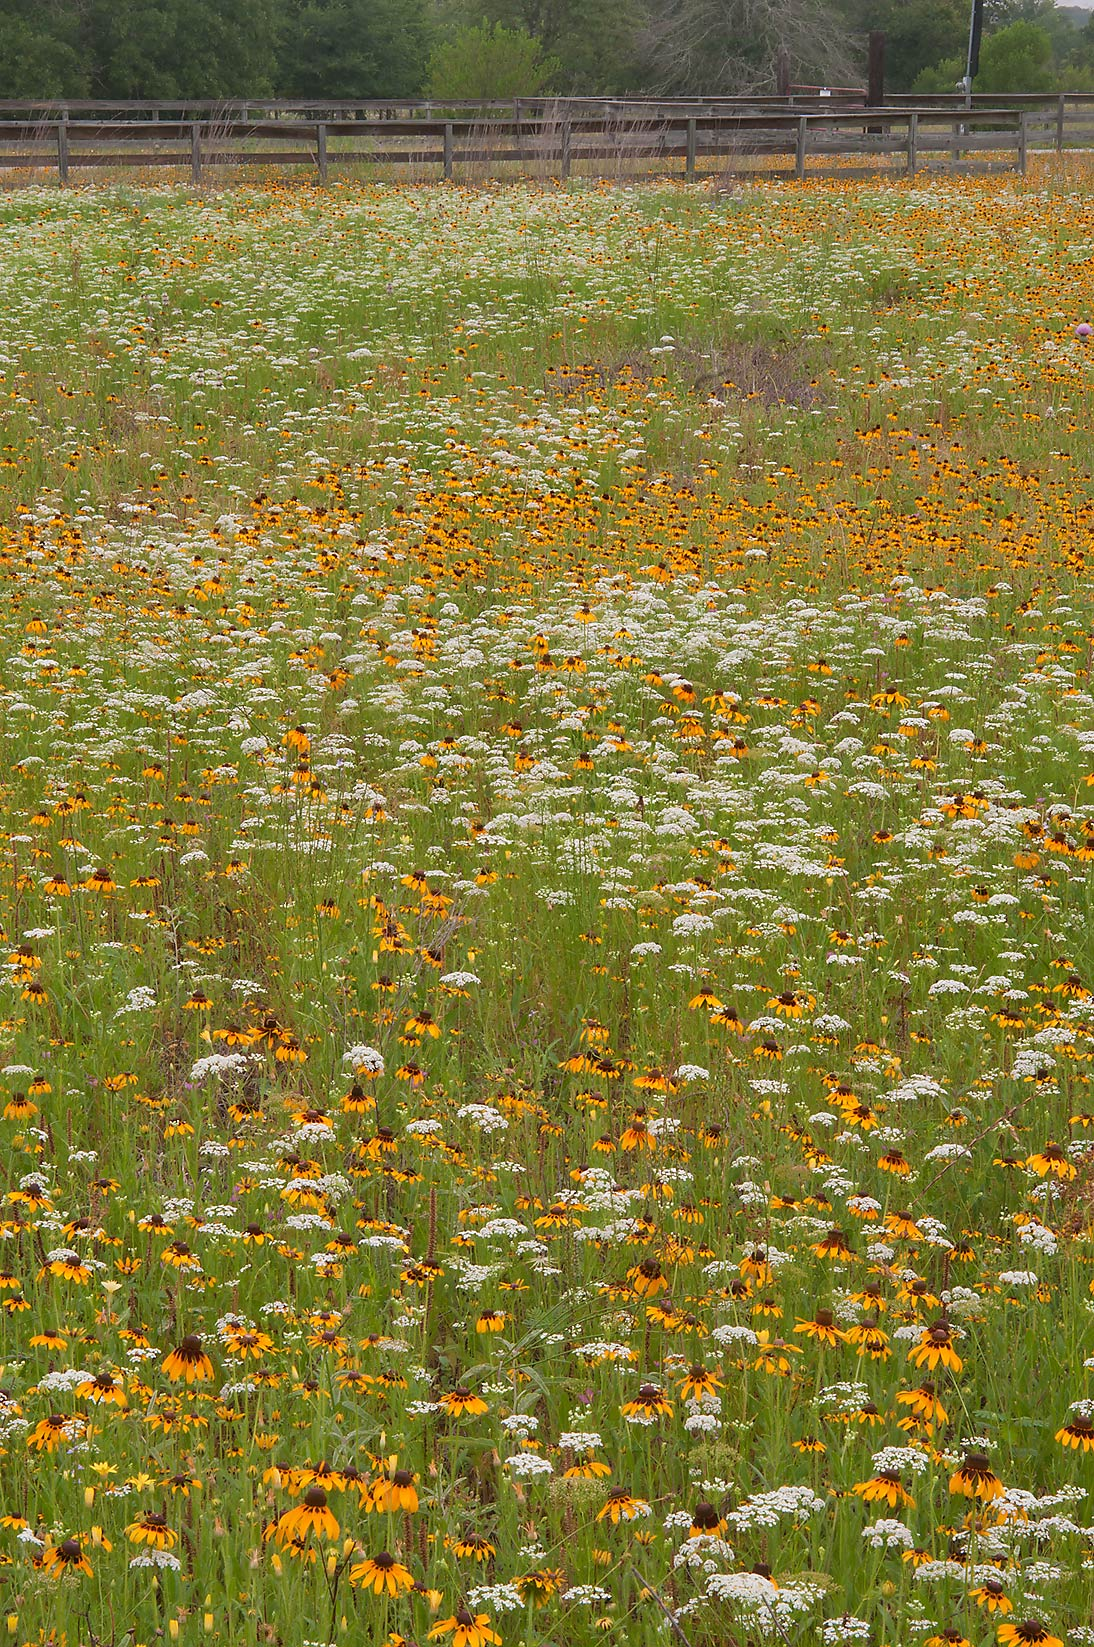 Field of flowers near equestrian entrance in Lick Creek Park. College Station, Texas